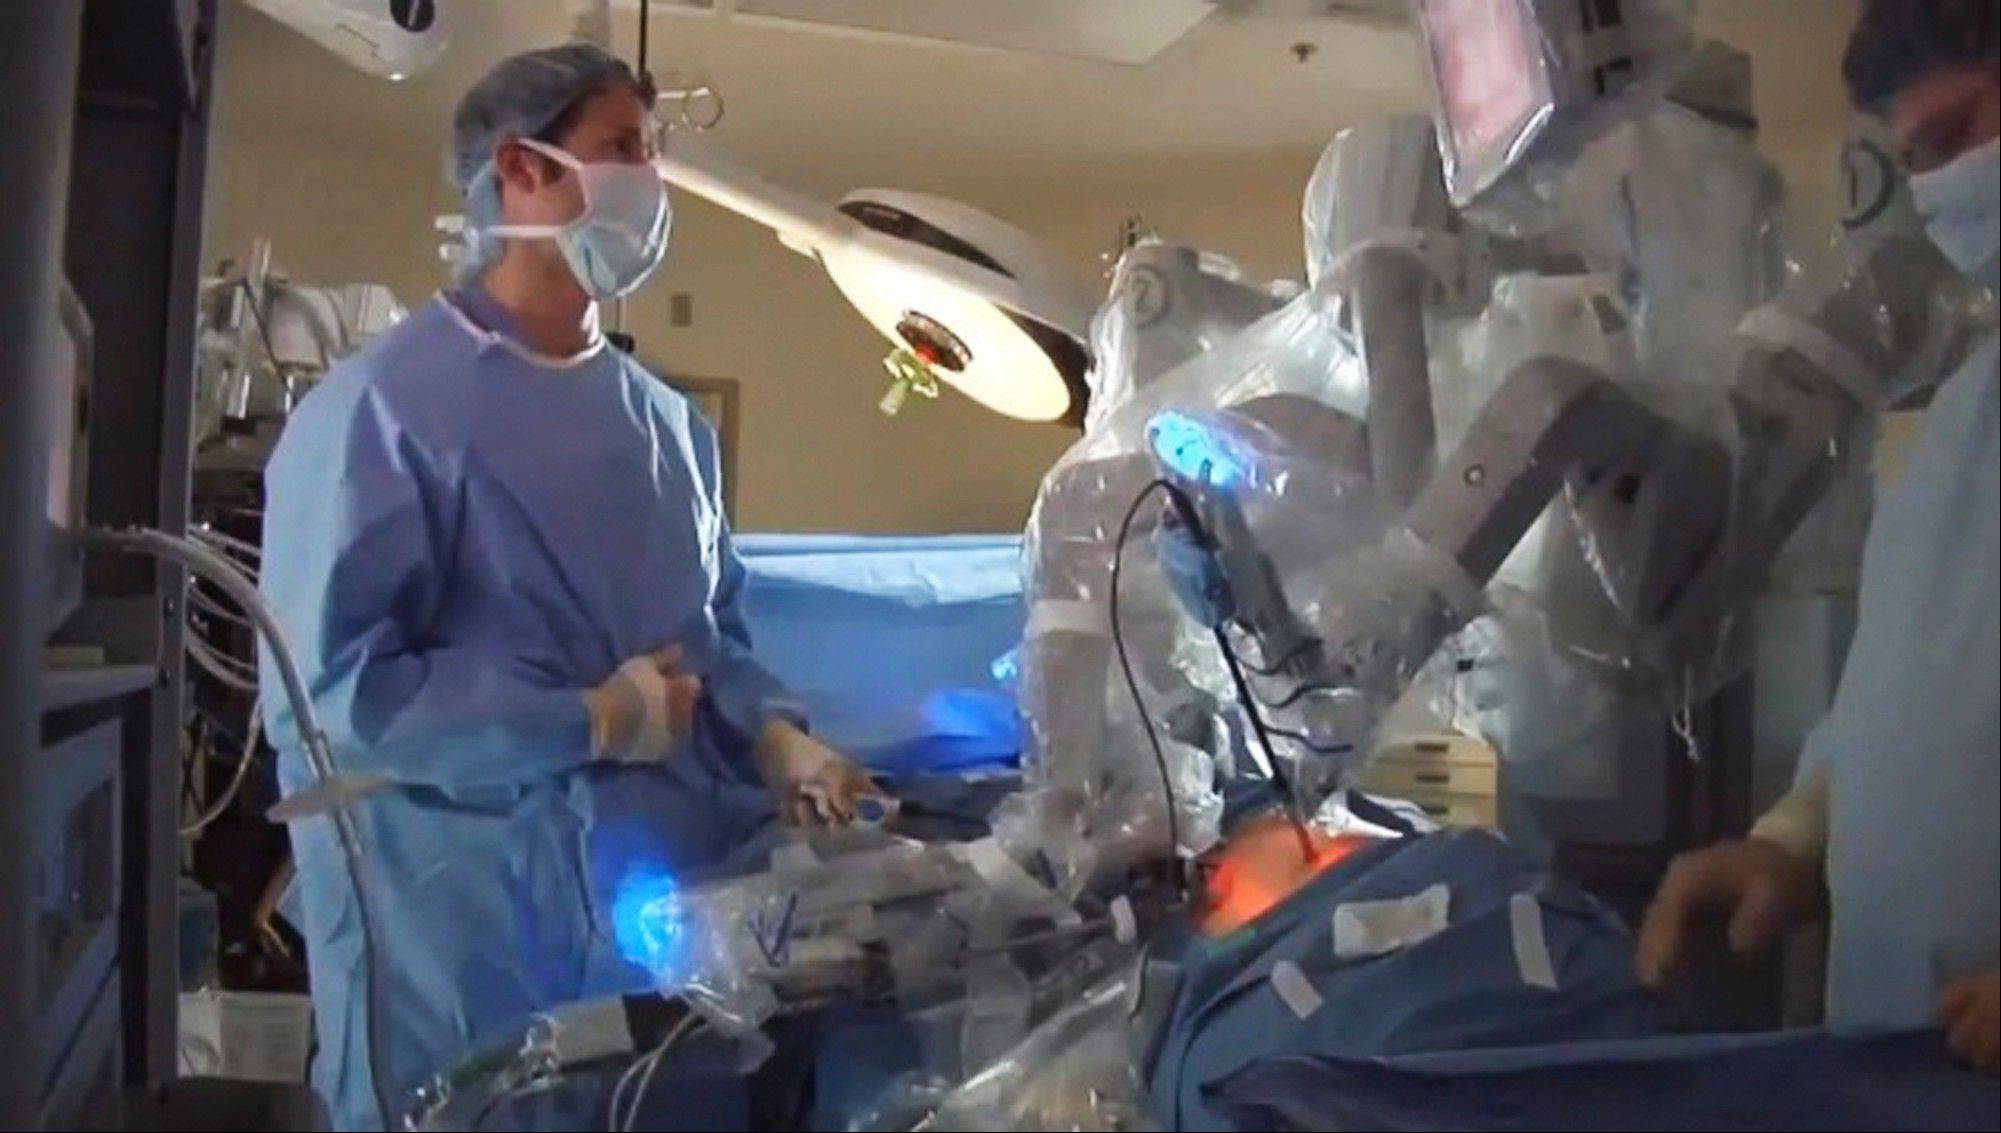 Doctors use the daVinci robotic system to perform a surgery. Surgeons say the advantages of the system include allowing them to operate sitting down, using small robotic hands with no tremor. But critics say a big increase in robot operations nationwide is due to heavy marketing and hype, and the U.S. Food and Drug Administration is looking into problems and deaths that may be linked with robotic surgery. (